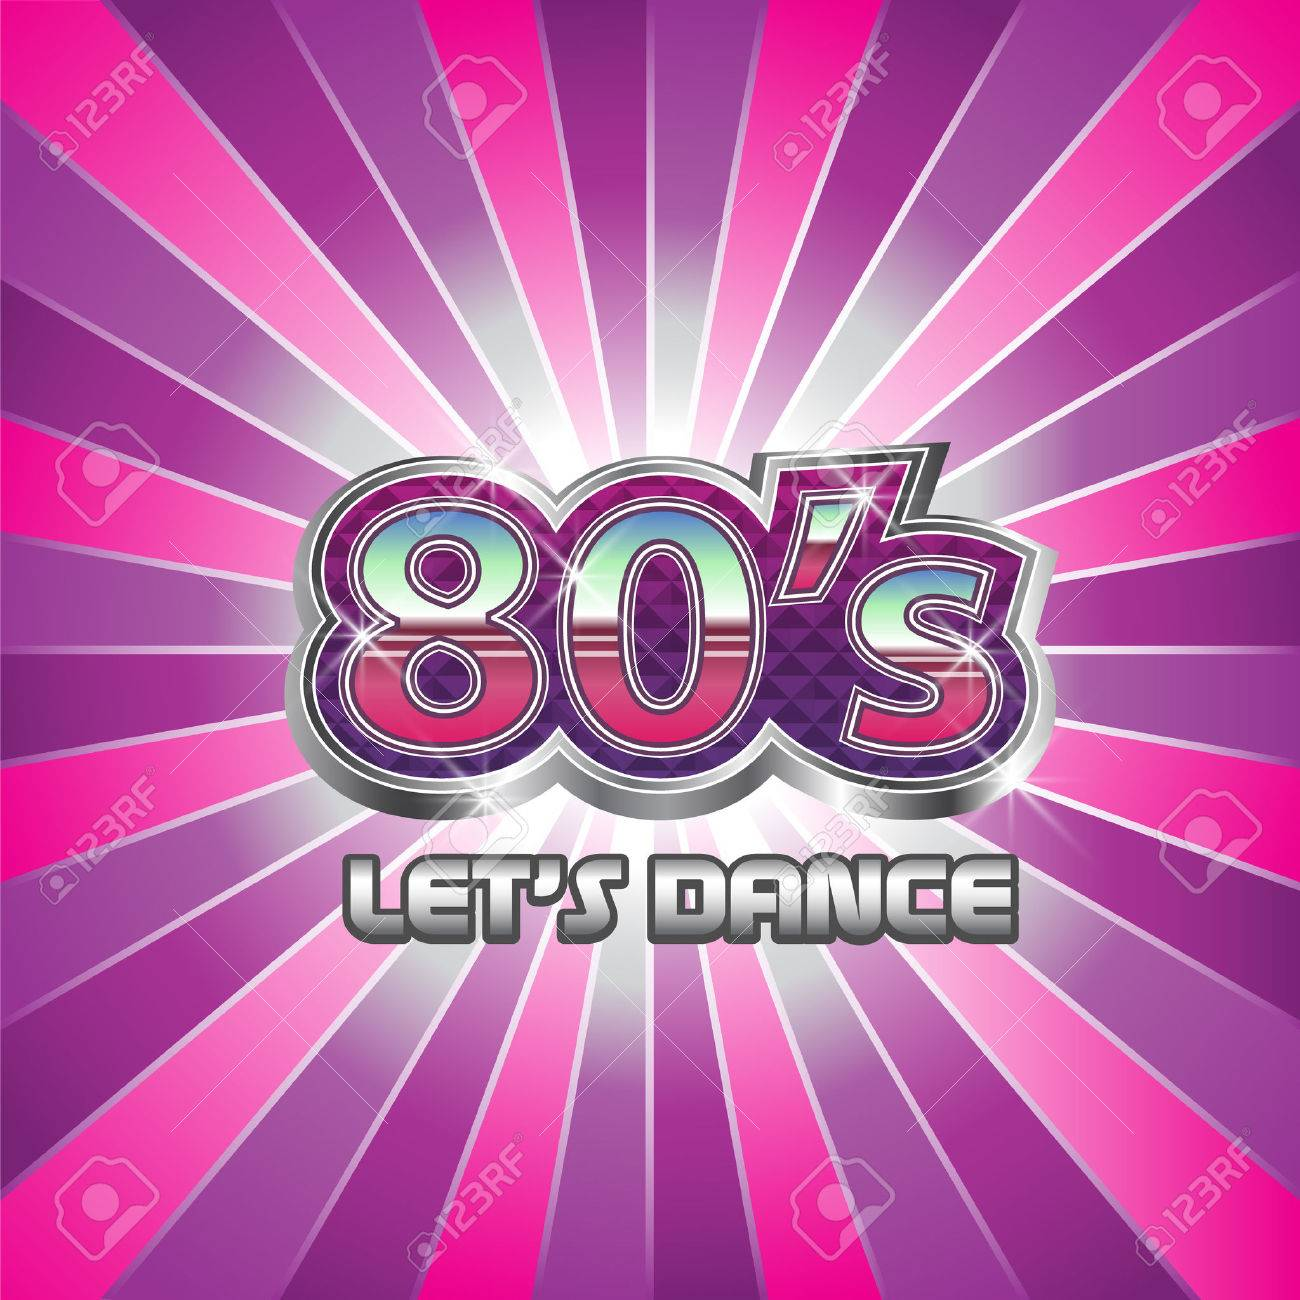 80s Dance Party Illustration Stock Vector